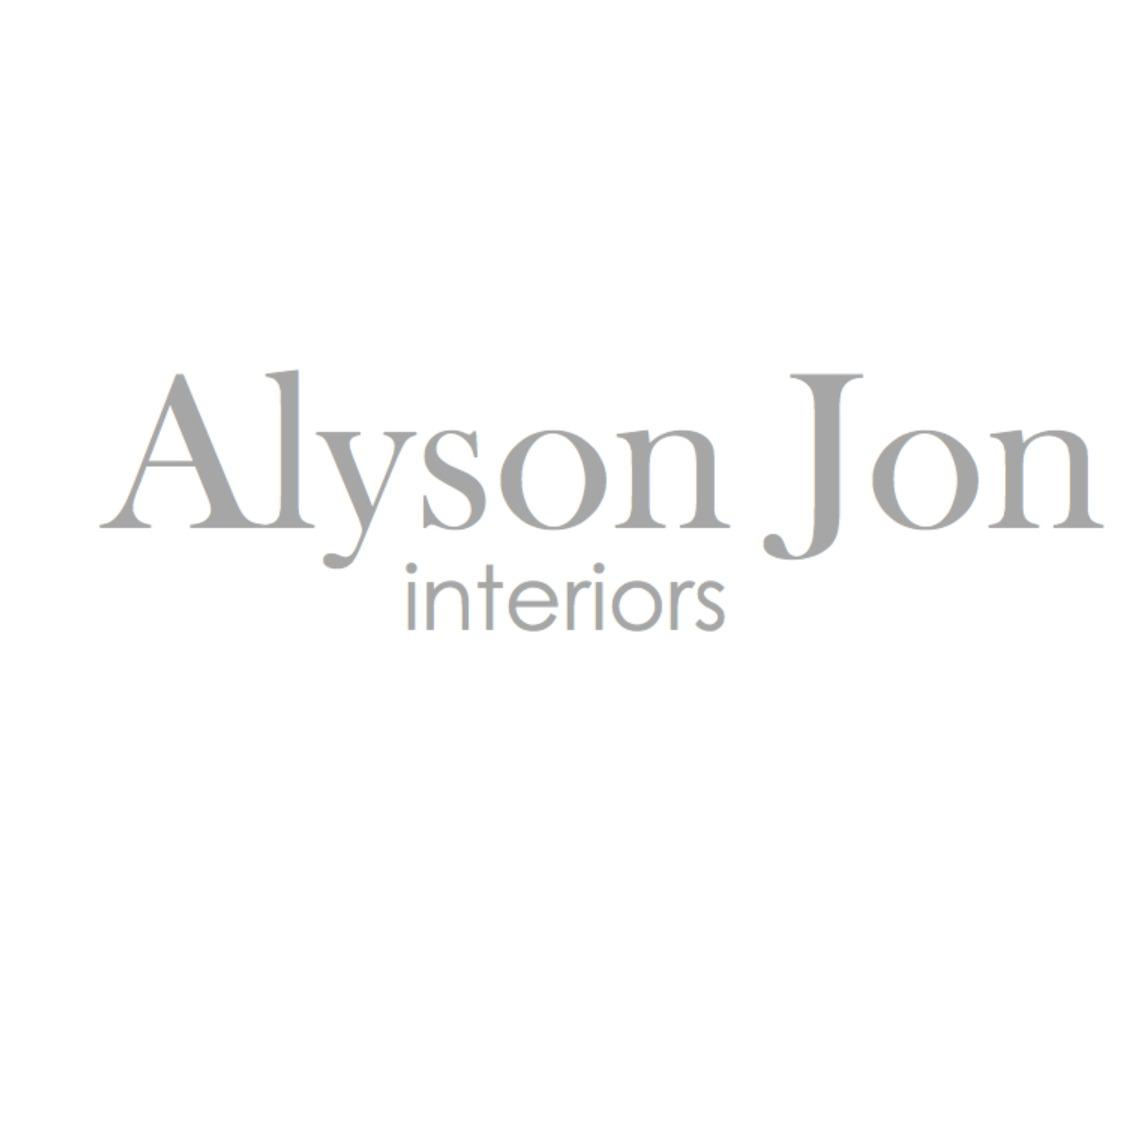 Alyson Jon Interiors - Houston